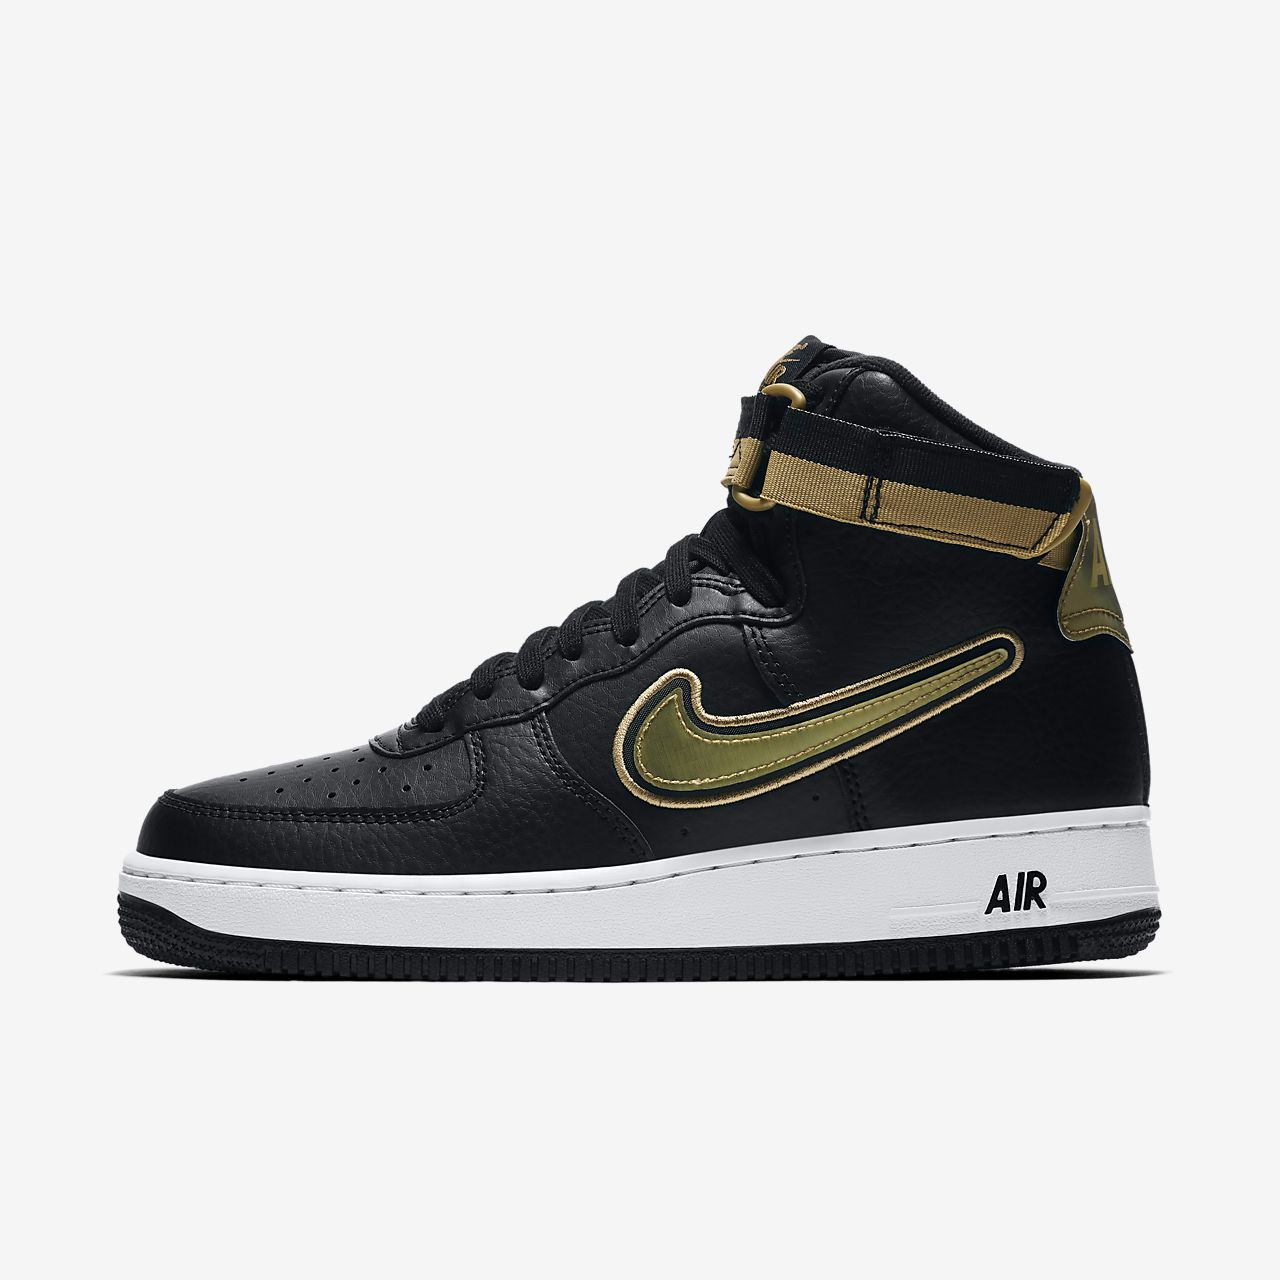 save off 47503 15551 Chaussure Nike Air Force 1 High '07 LV8 Sport NBA pour Homme. Nike ...